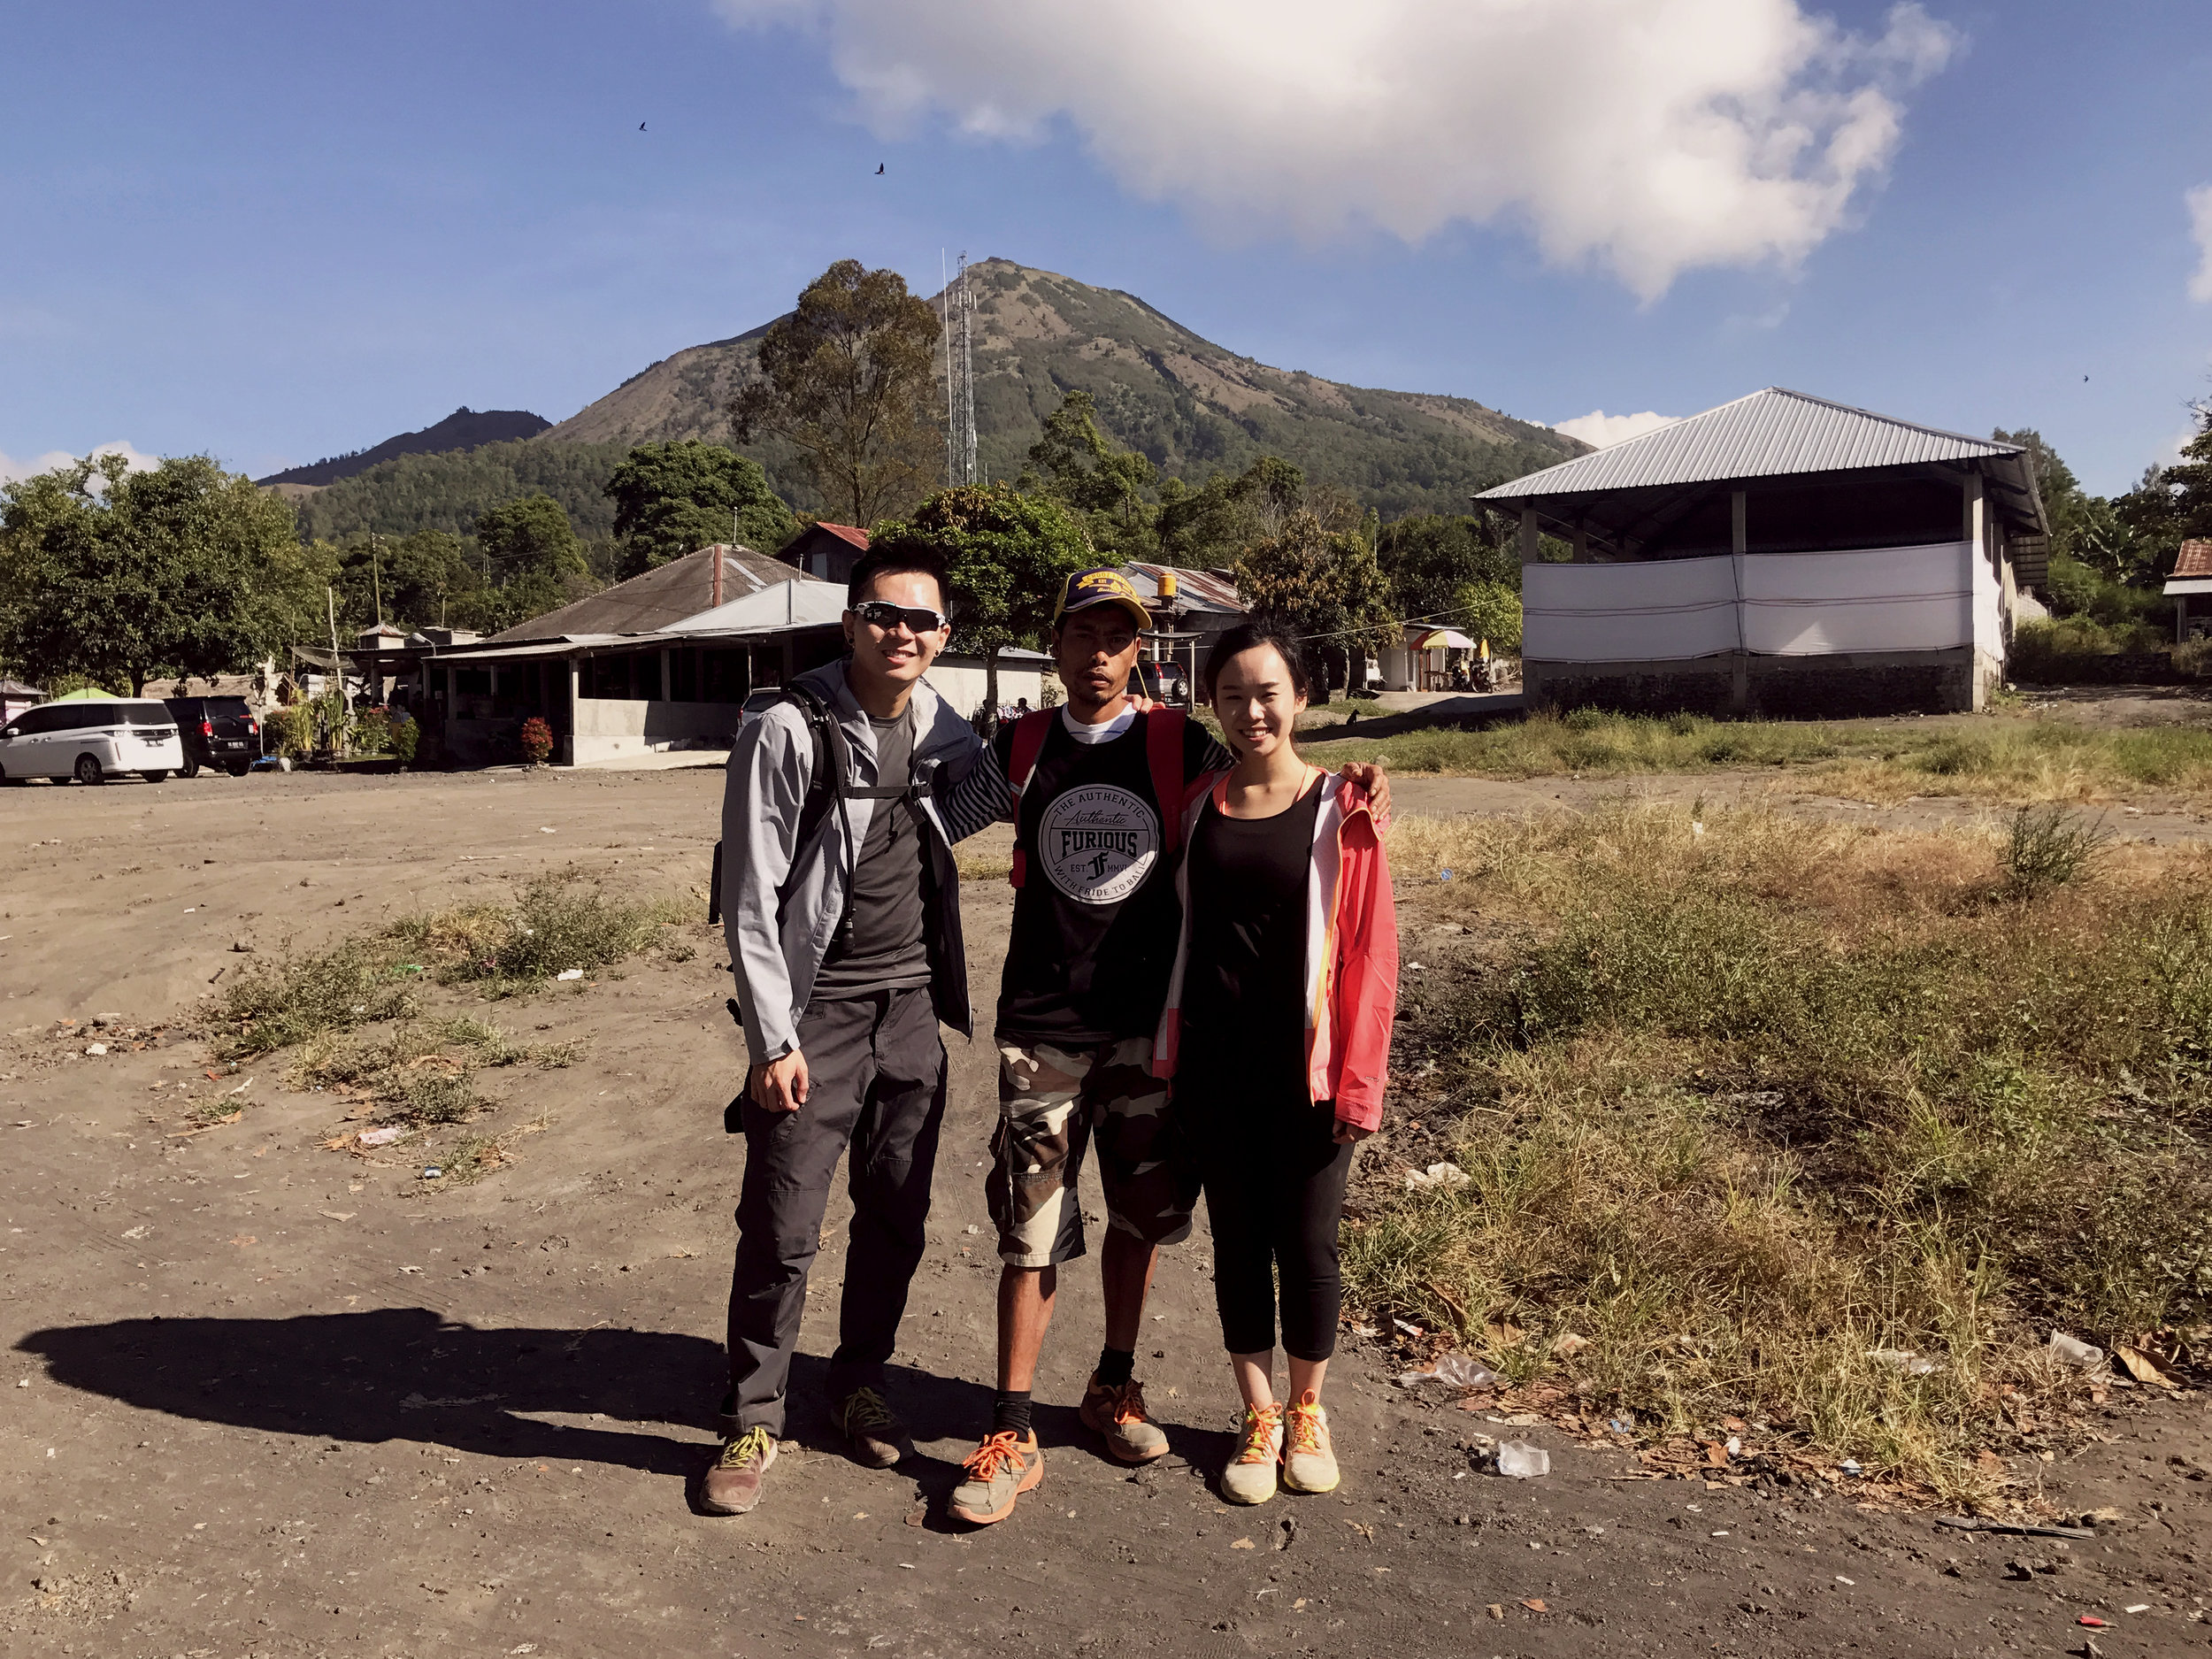 With our guide, Ricky at the base of Mount Batur at the end of our tour.